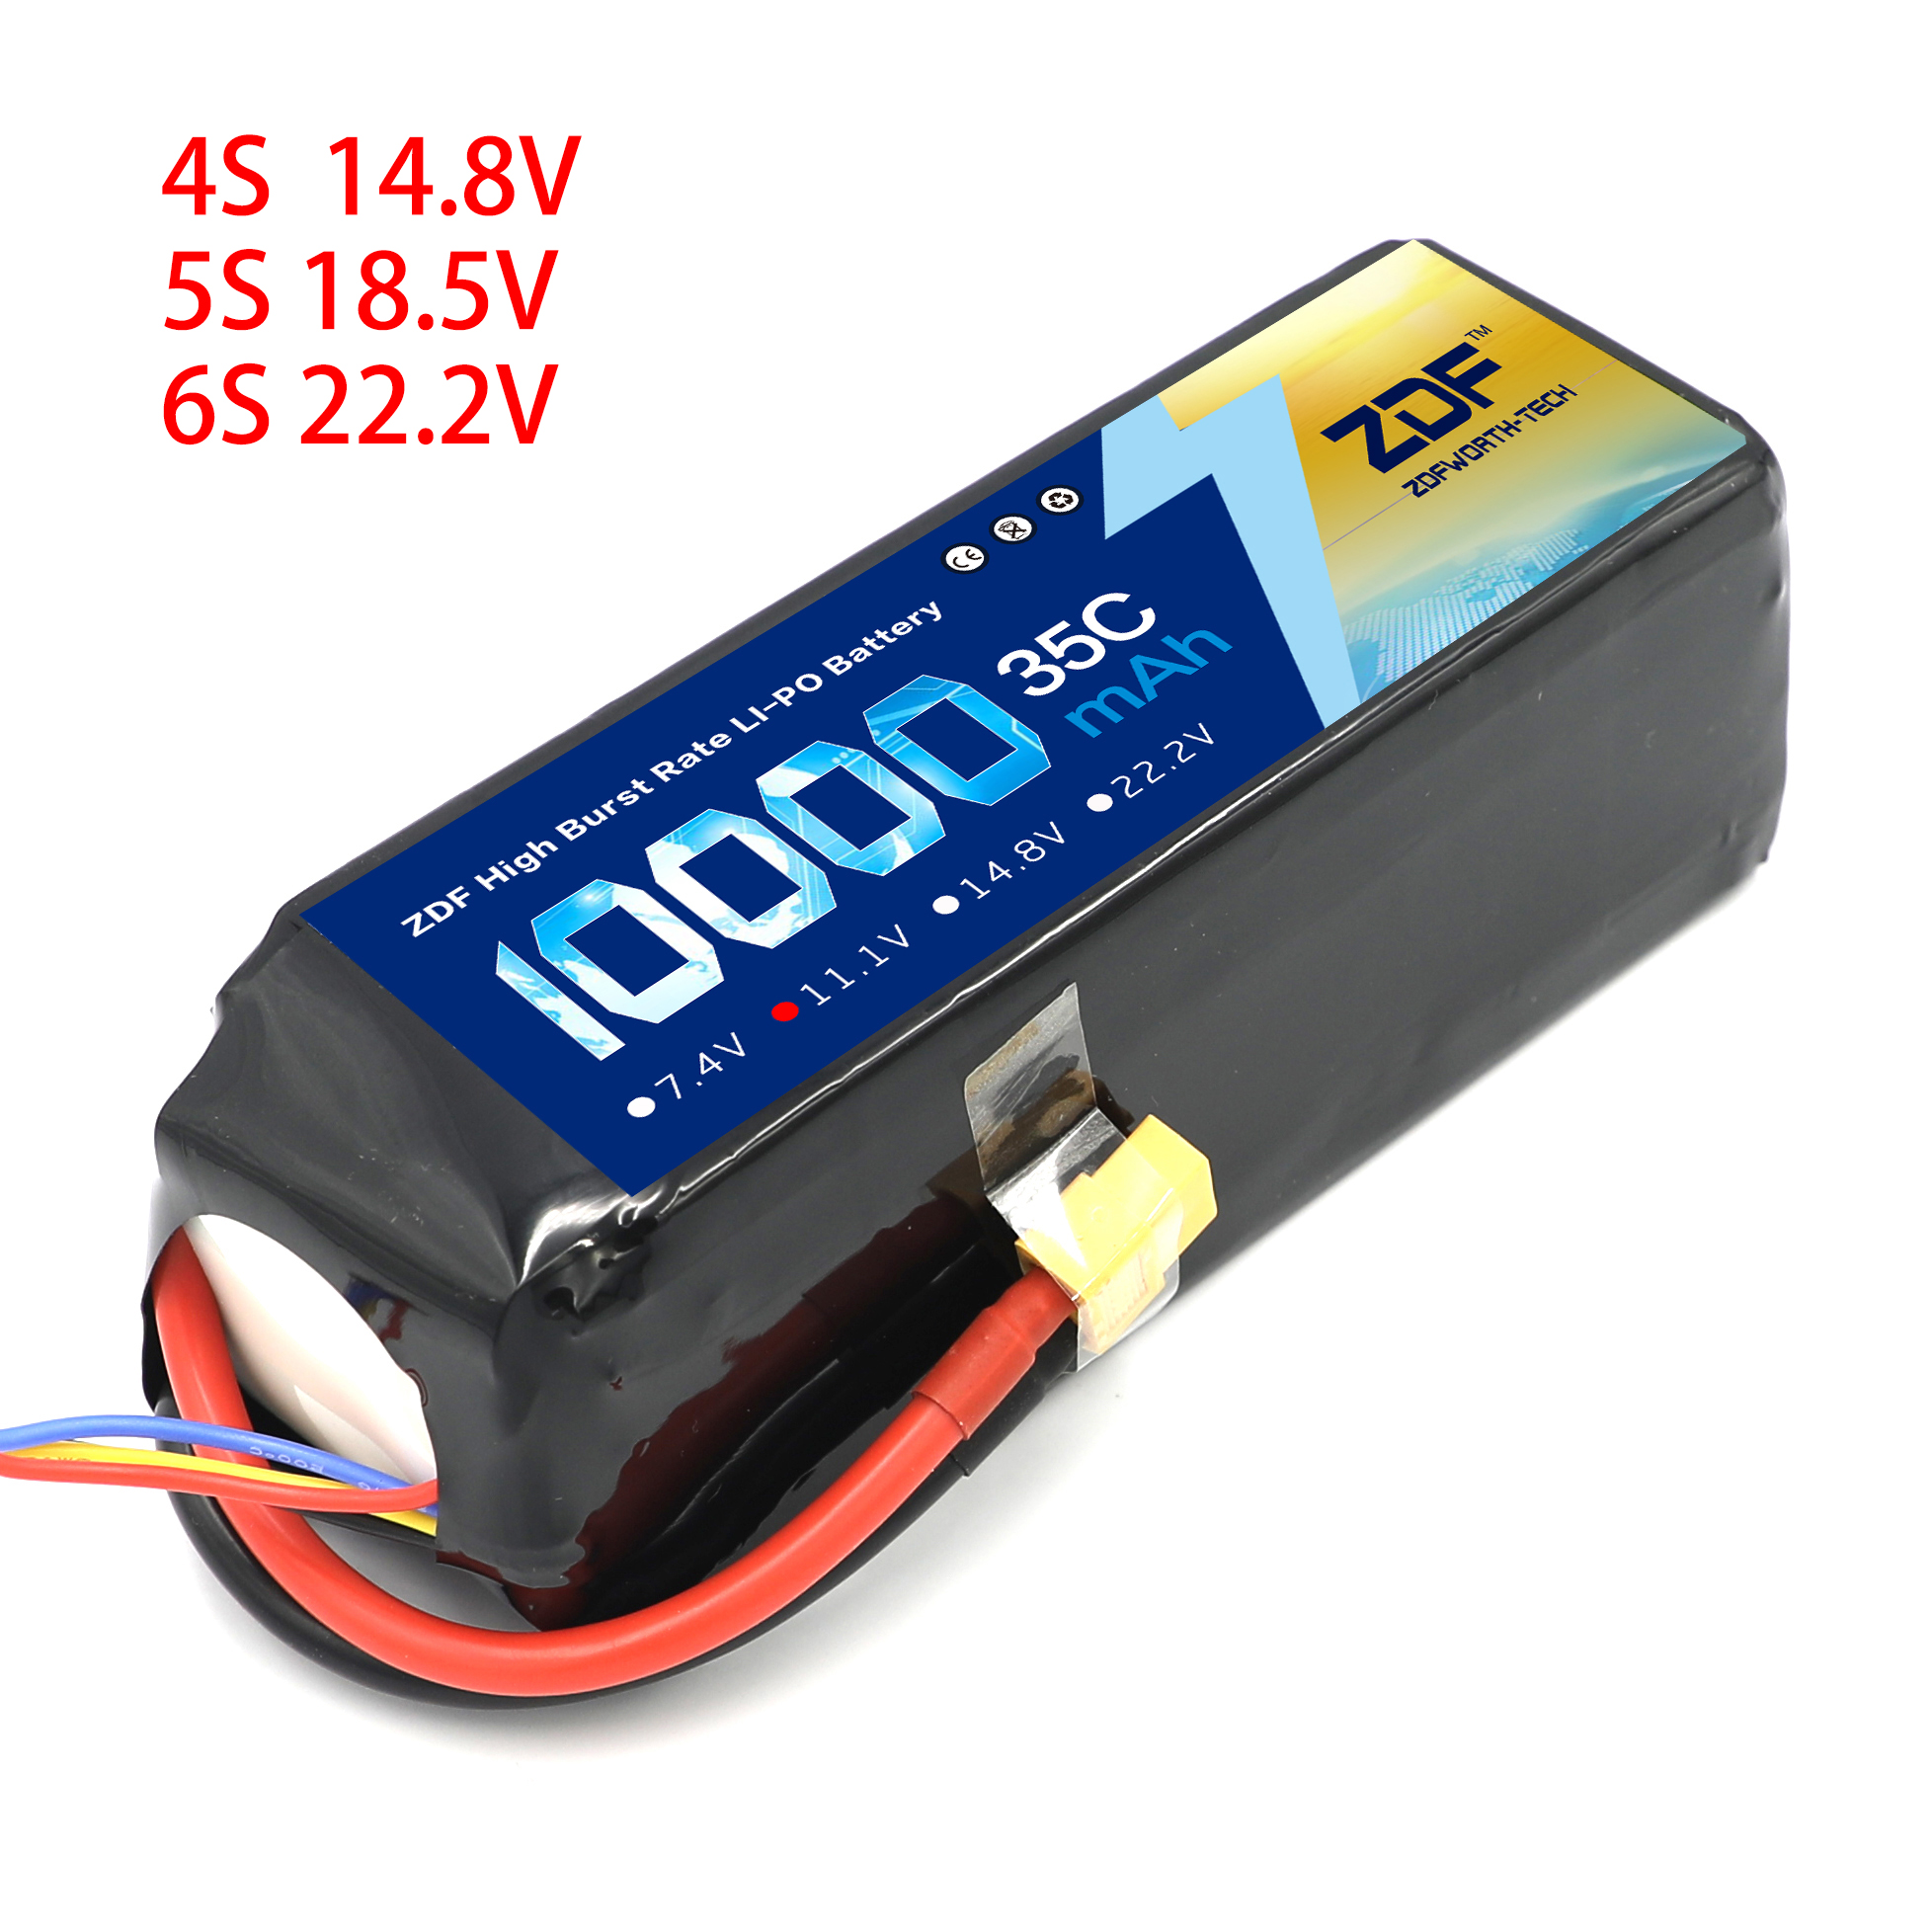 ZDF 4S 5S 6S 14.8V 18.5V 22.2V 10000mAh 35C MAX 70C RC Lipo Battery For RC Helicopter Airplane Drone racing 1:5 1:8 car image